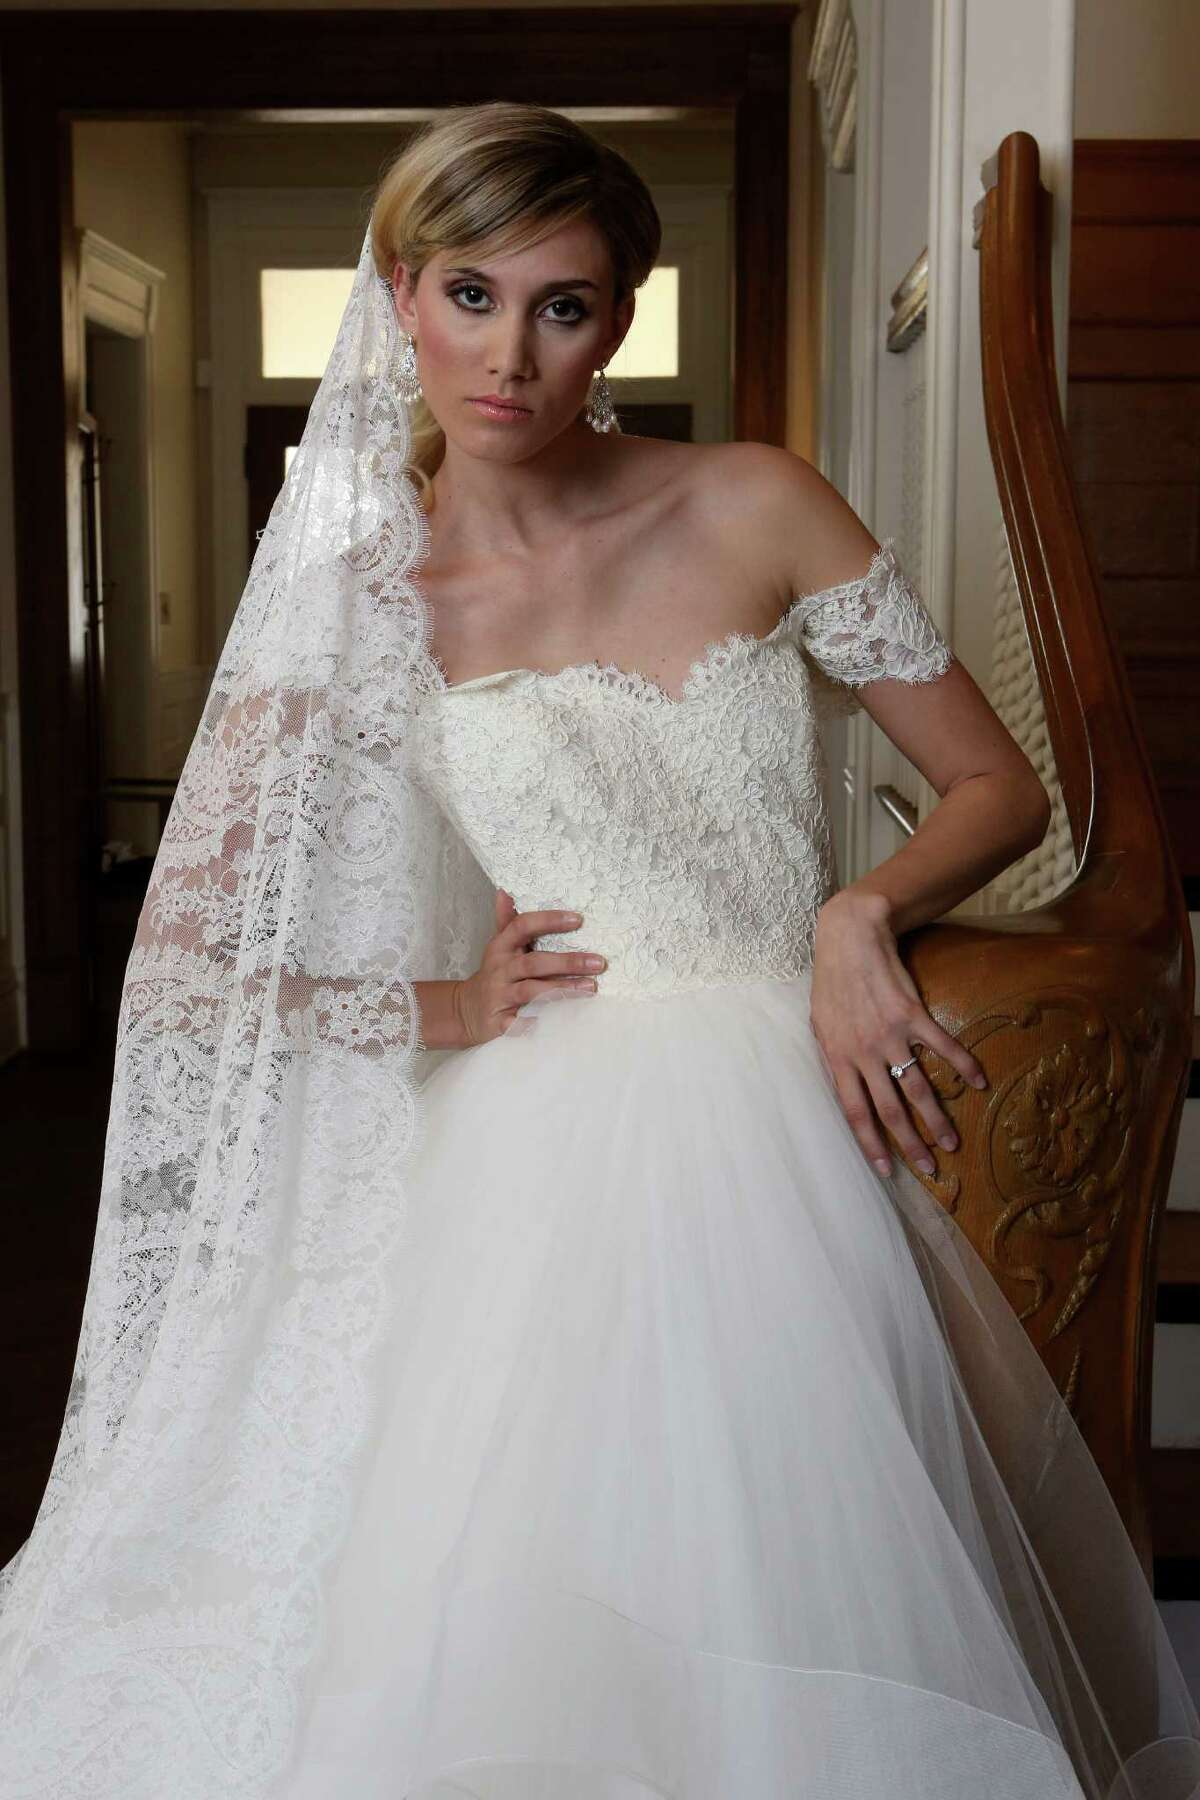 Brooke Vu wears a Jim Hjelm gown with a silk satin-faced organza bodice and trumpet silk skirt of embroidered ivory petals. The gown features a crystal-accented waistline, $6,259. Pearl-adorned mini-chandelier earrins, $165. Gown and earrings from the Bridal Salon of San Antonio, (210) 828-7931. On her head is a rhinestone-studded headband, $375, by Les Accessoires, Bridal Galleria of Texas, (210) 342-5752.